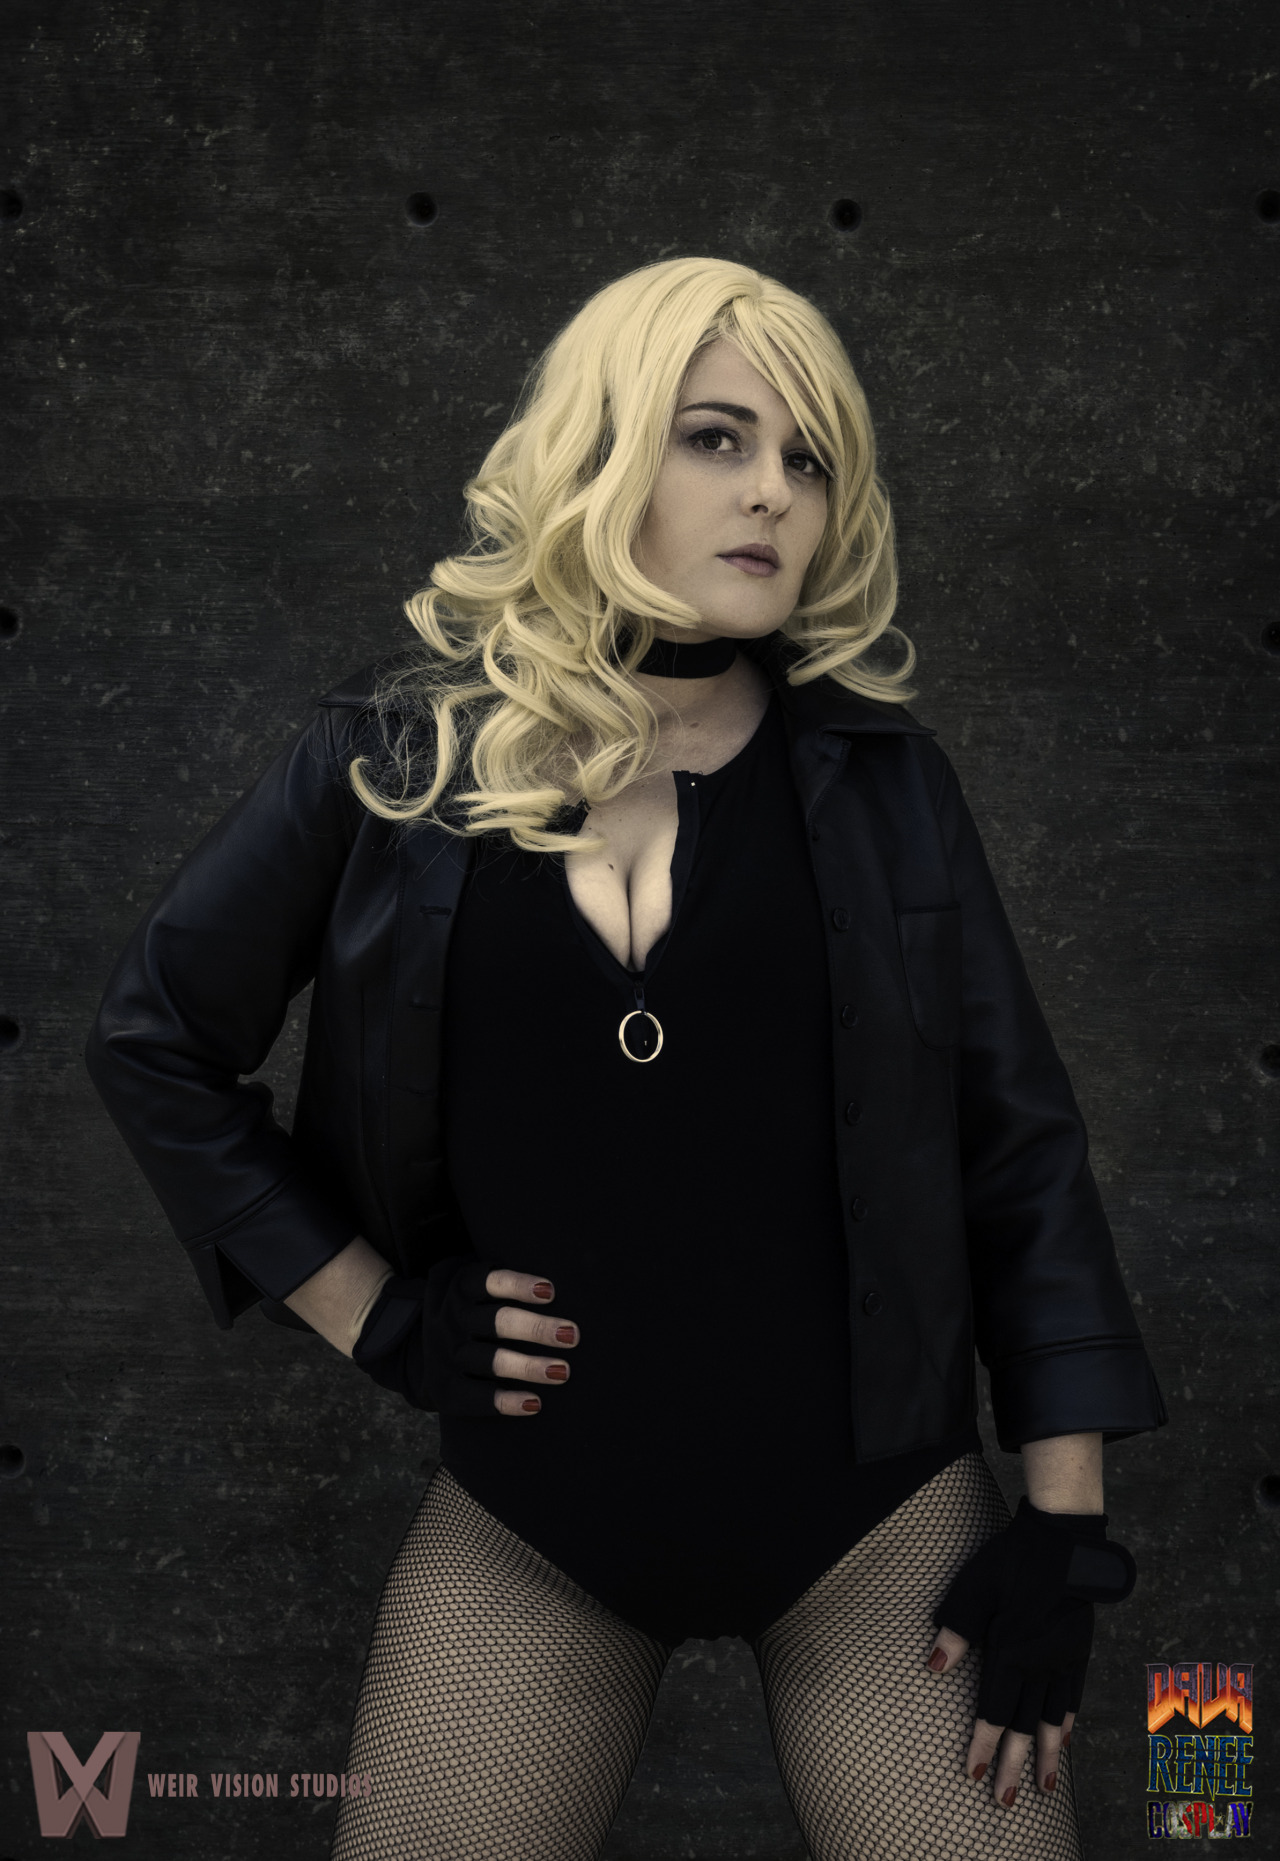 Dava Renee CosplayDava Renee Cosplaying as Black CanaryCostume/Submitted by Dava Renee Cosplay[ FB | TW | DA | TU | SE ]Photo/Edit by Weir Vision Studios#comics #cosplay #DC #BlackCanary #femalecosplay #davareneecosplay #submission